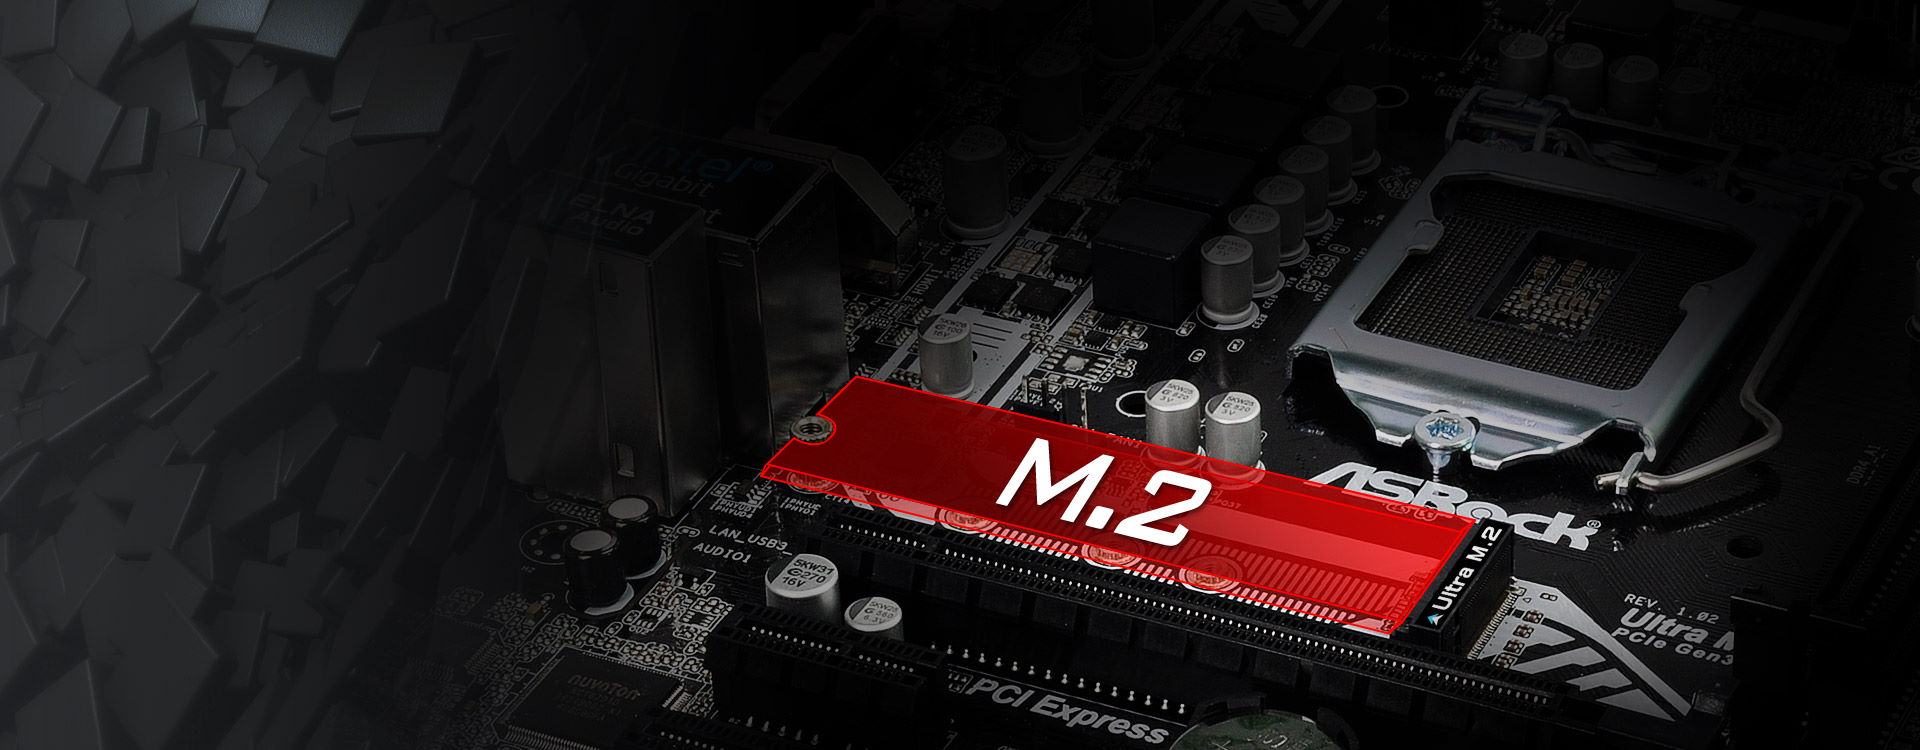 Asrock B250m Hdv Motherboard H110m Ddr4 Socket 1151 In Addition It Also Supports Sata3 6gb S M2 Modules And Is Compatible With Asrocks U2 Kit For Installing Some Of The Worlds Fastest Pcie Gen3 X4